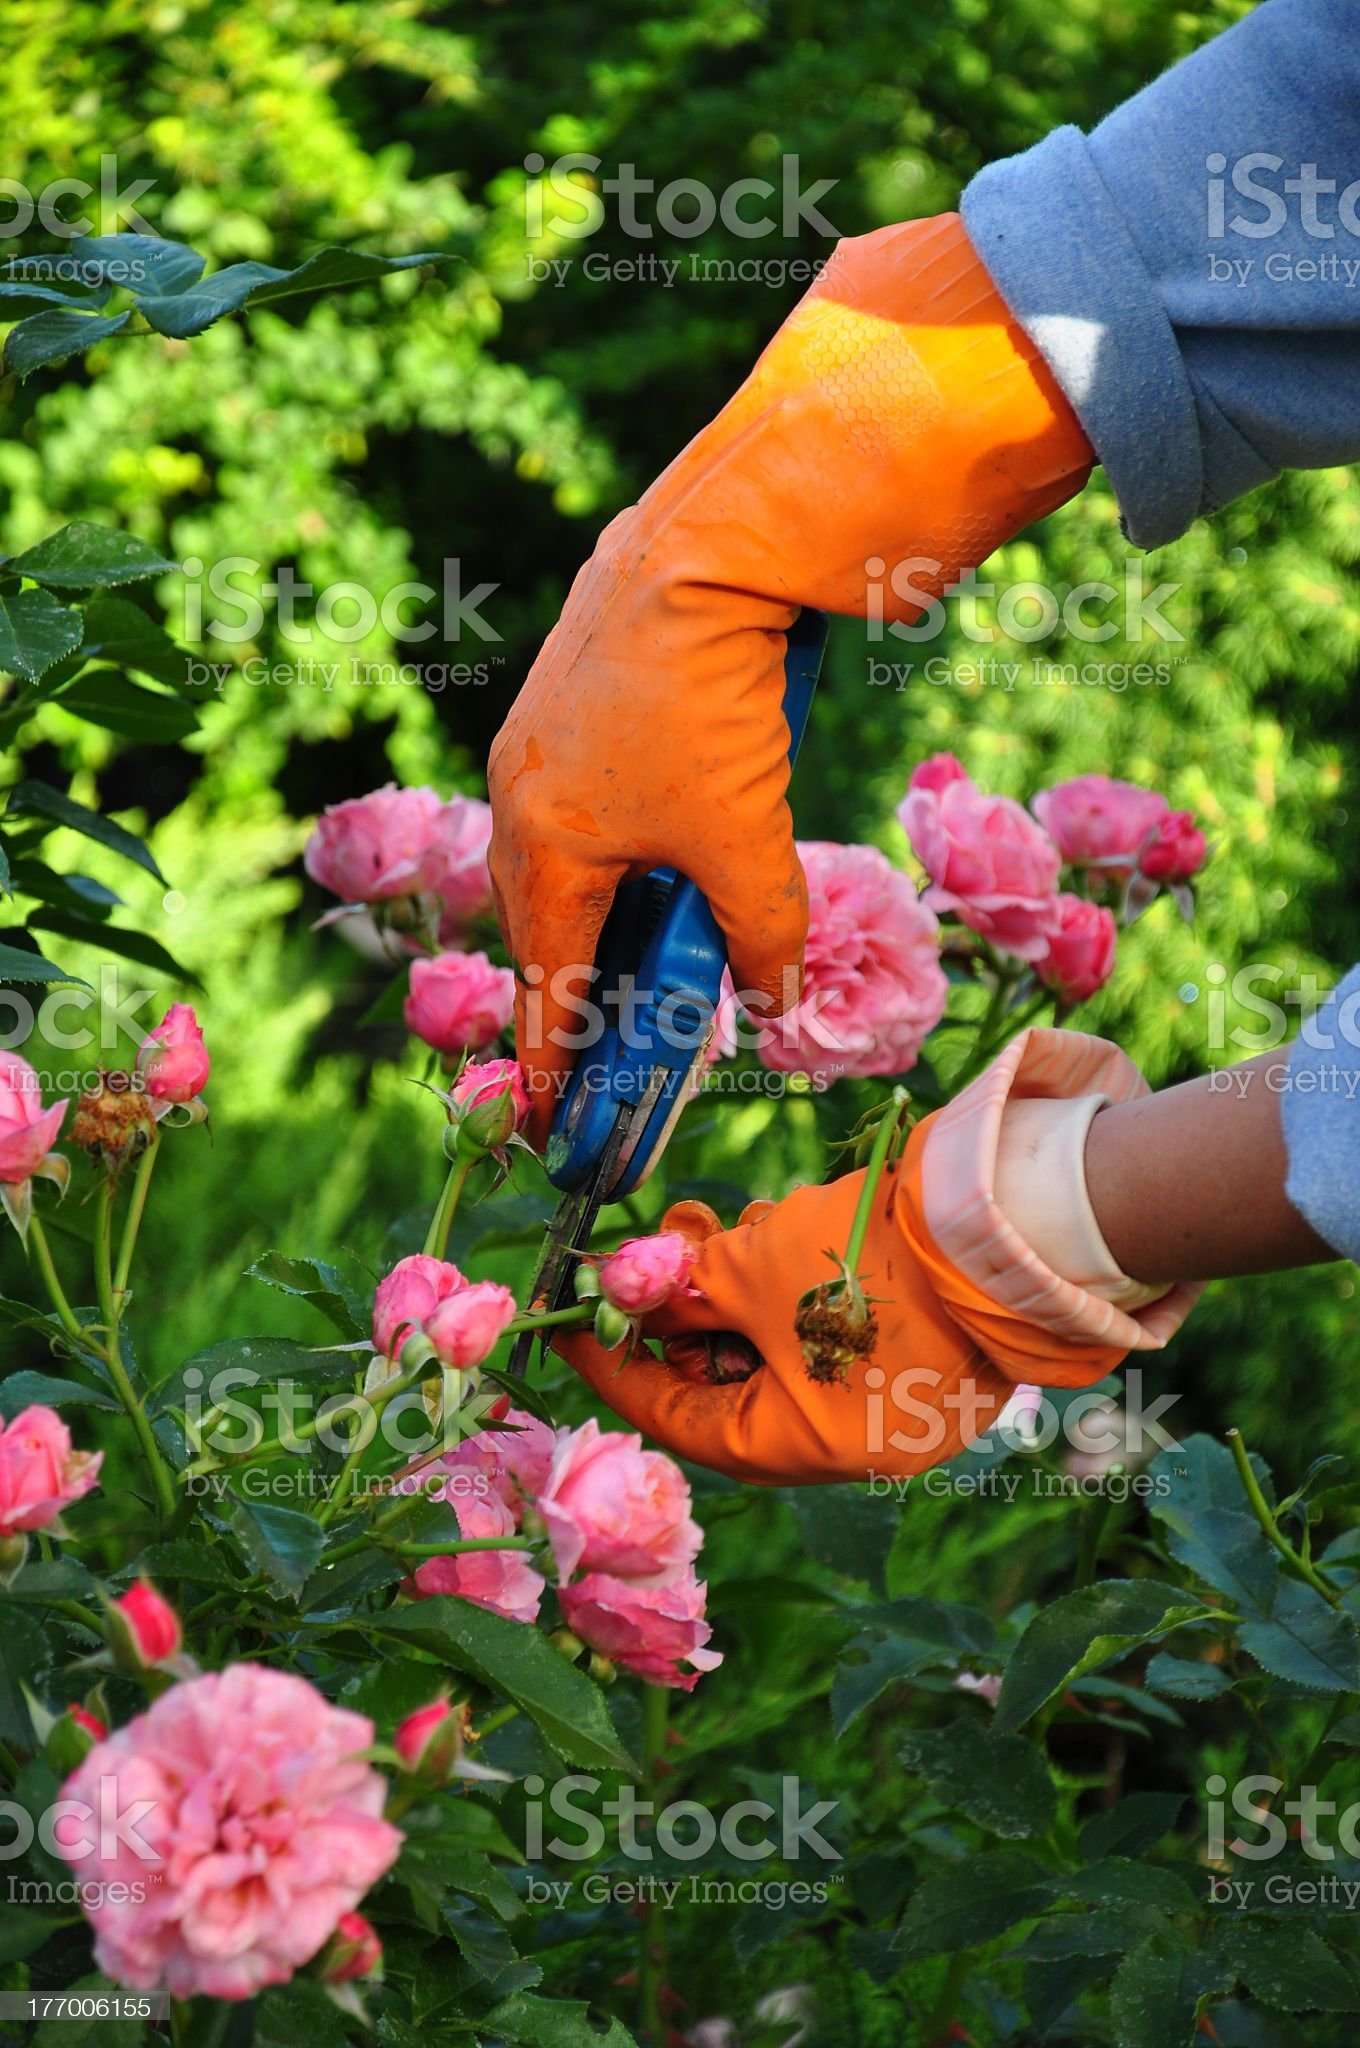 A woman clipping some roses in her garden royalty-free stock photo